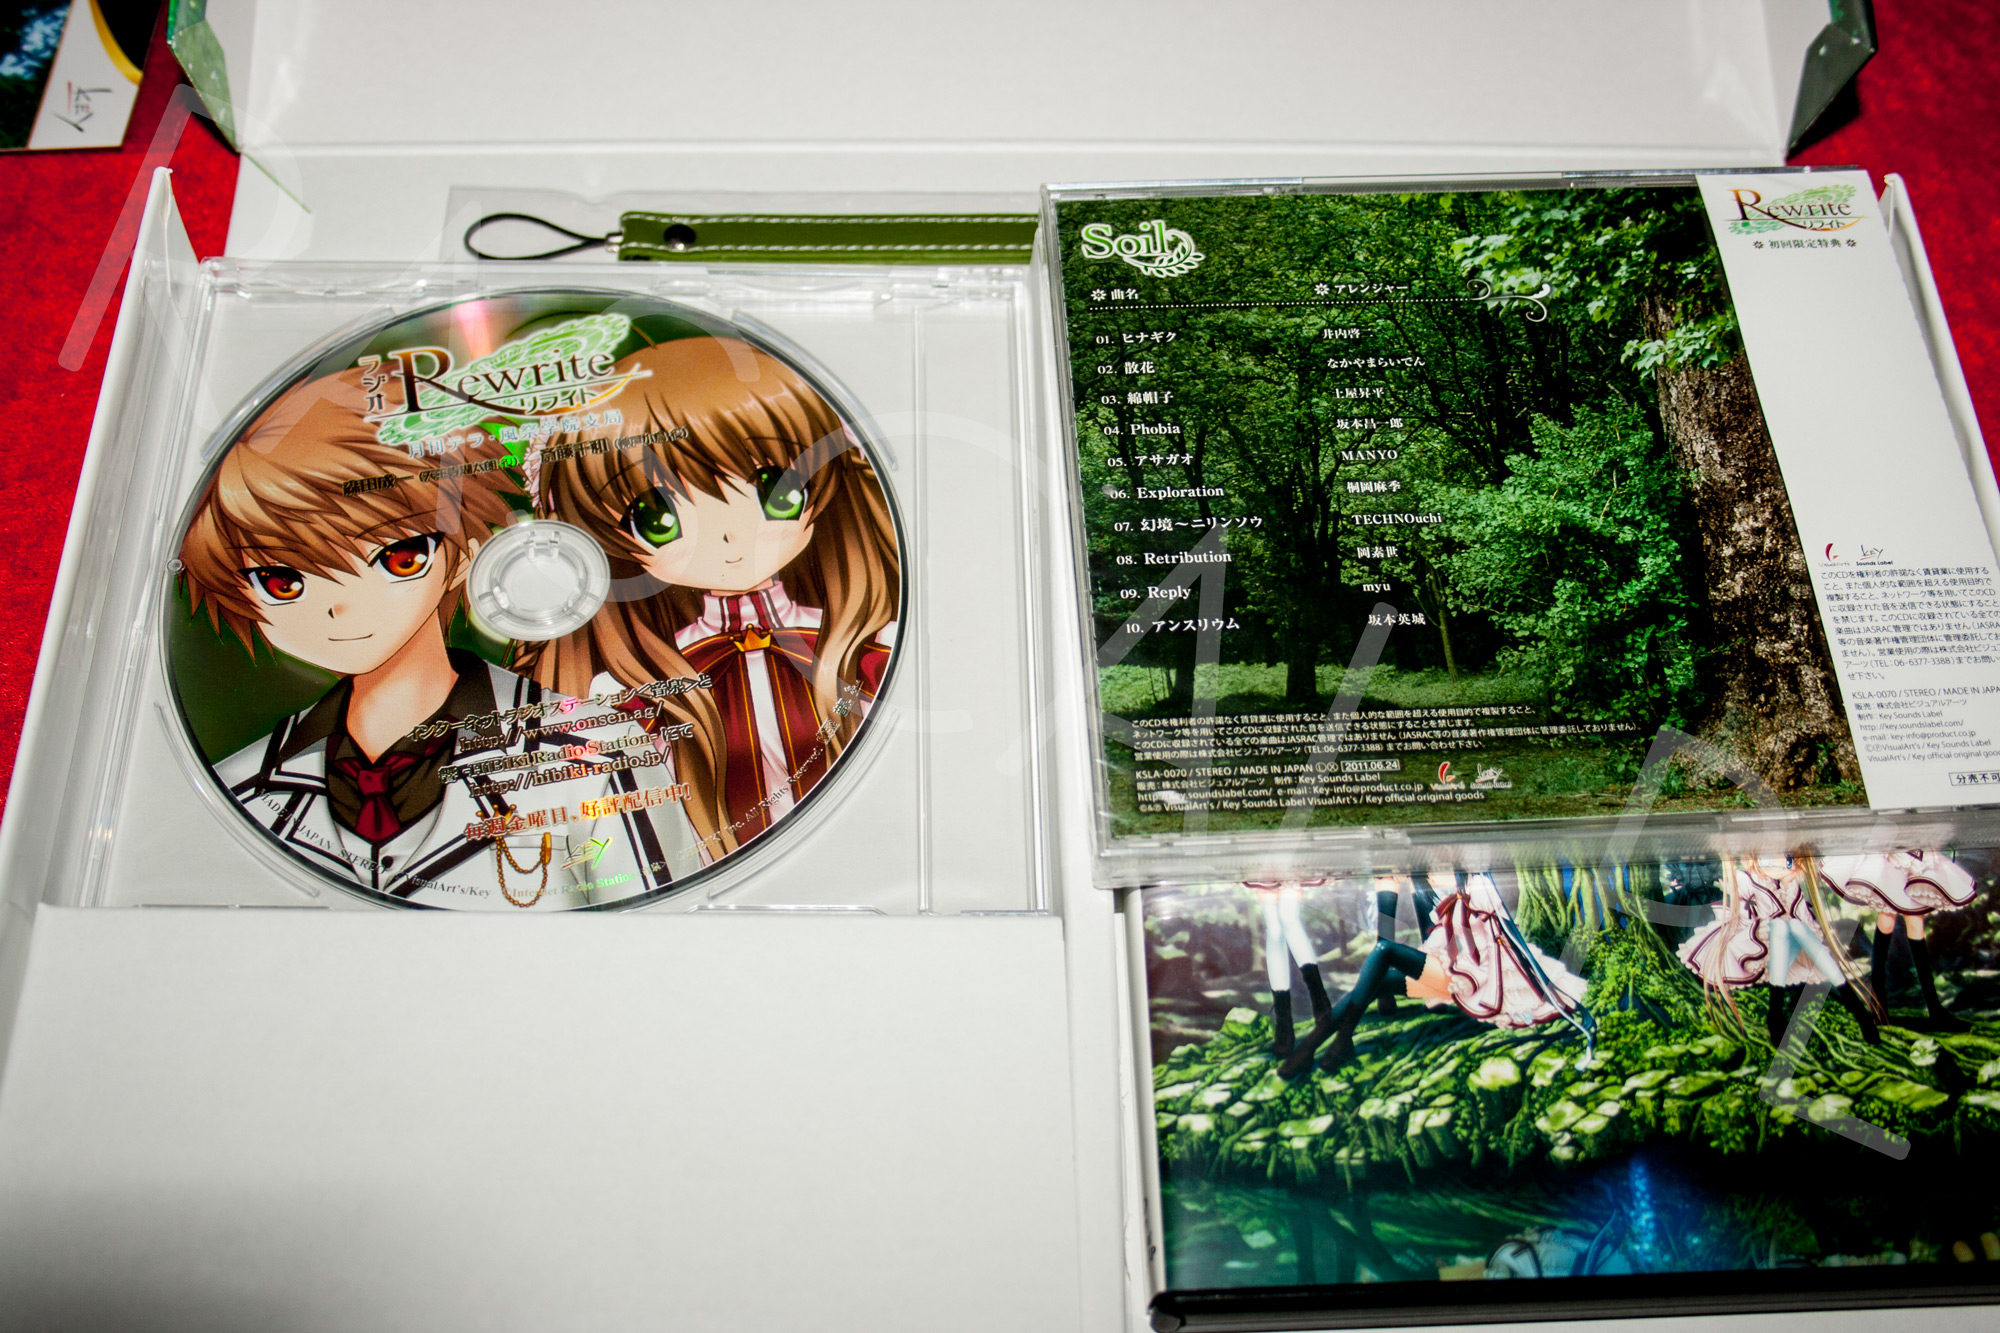 Rewrite Audio CD